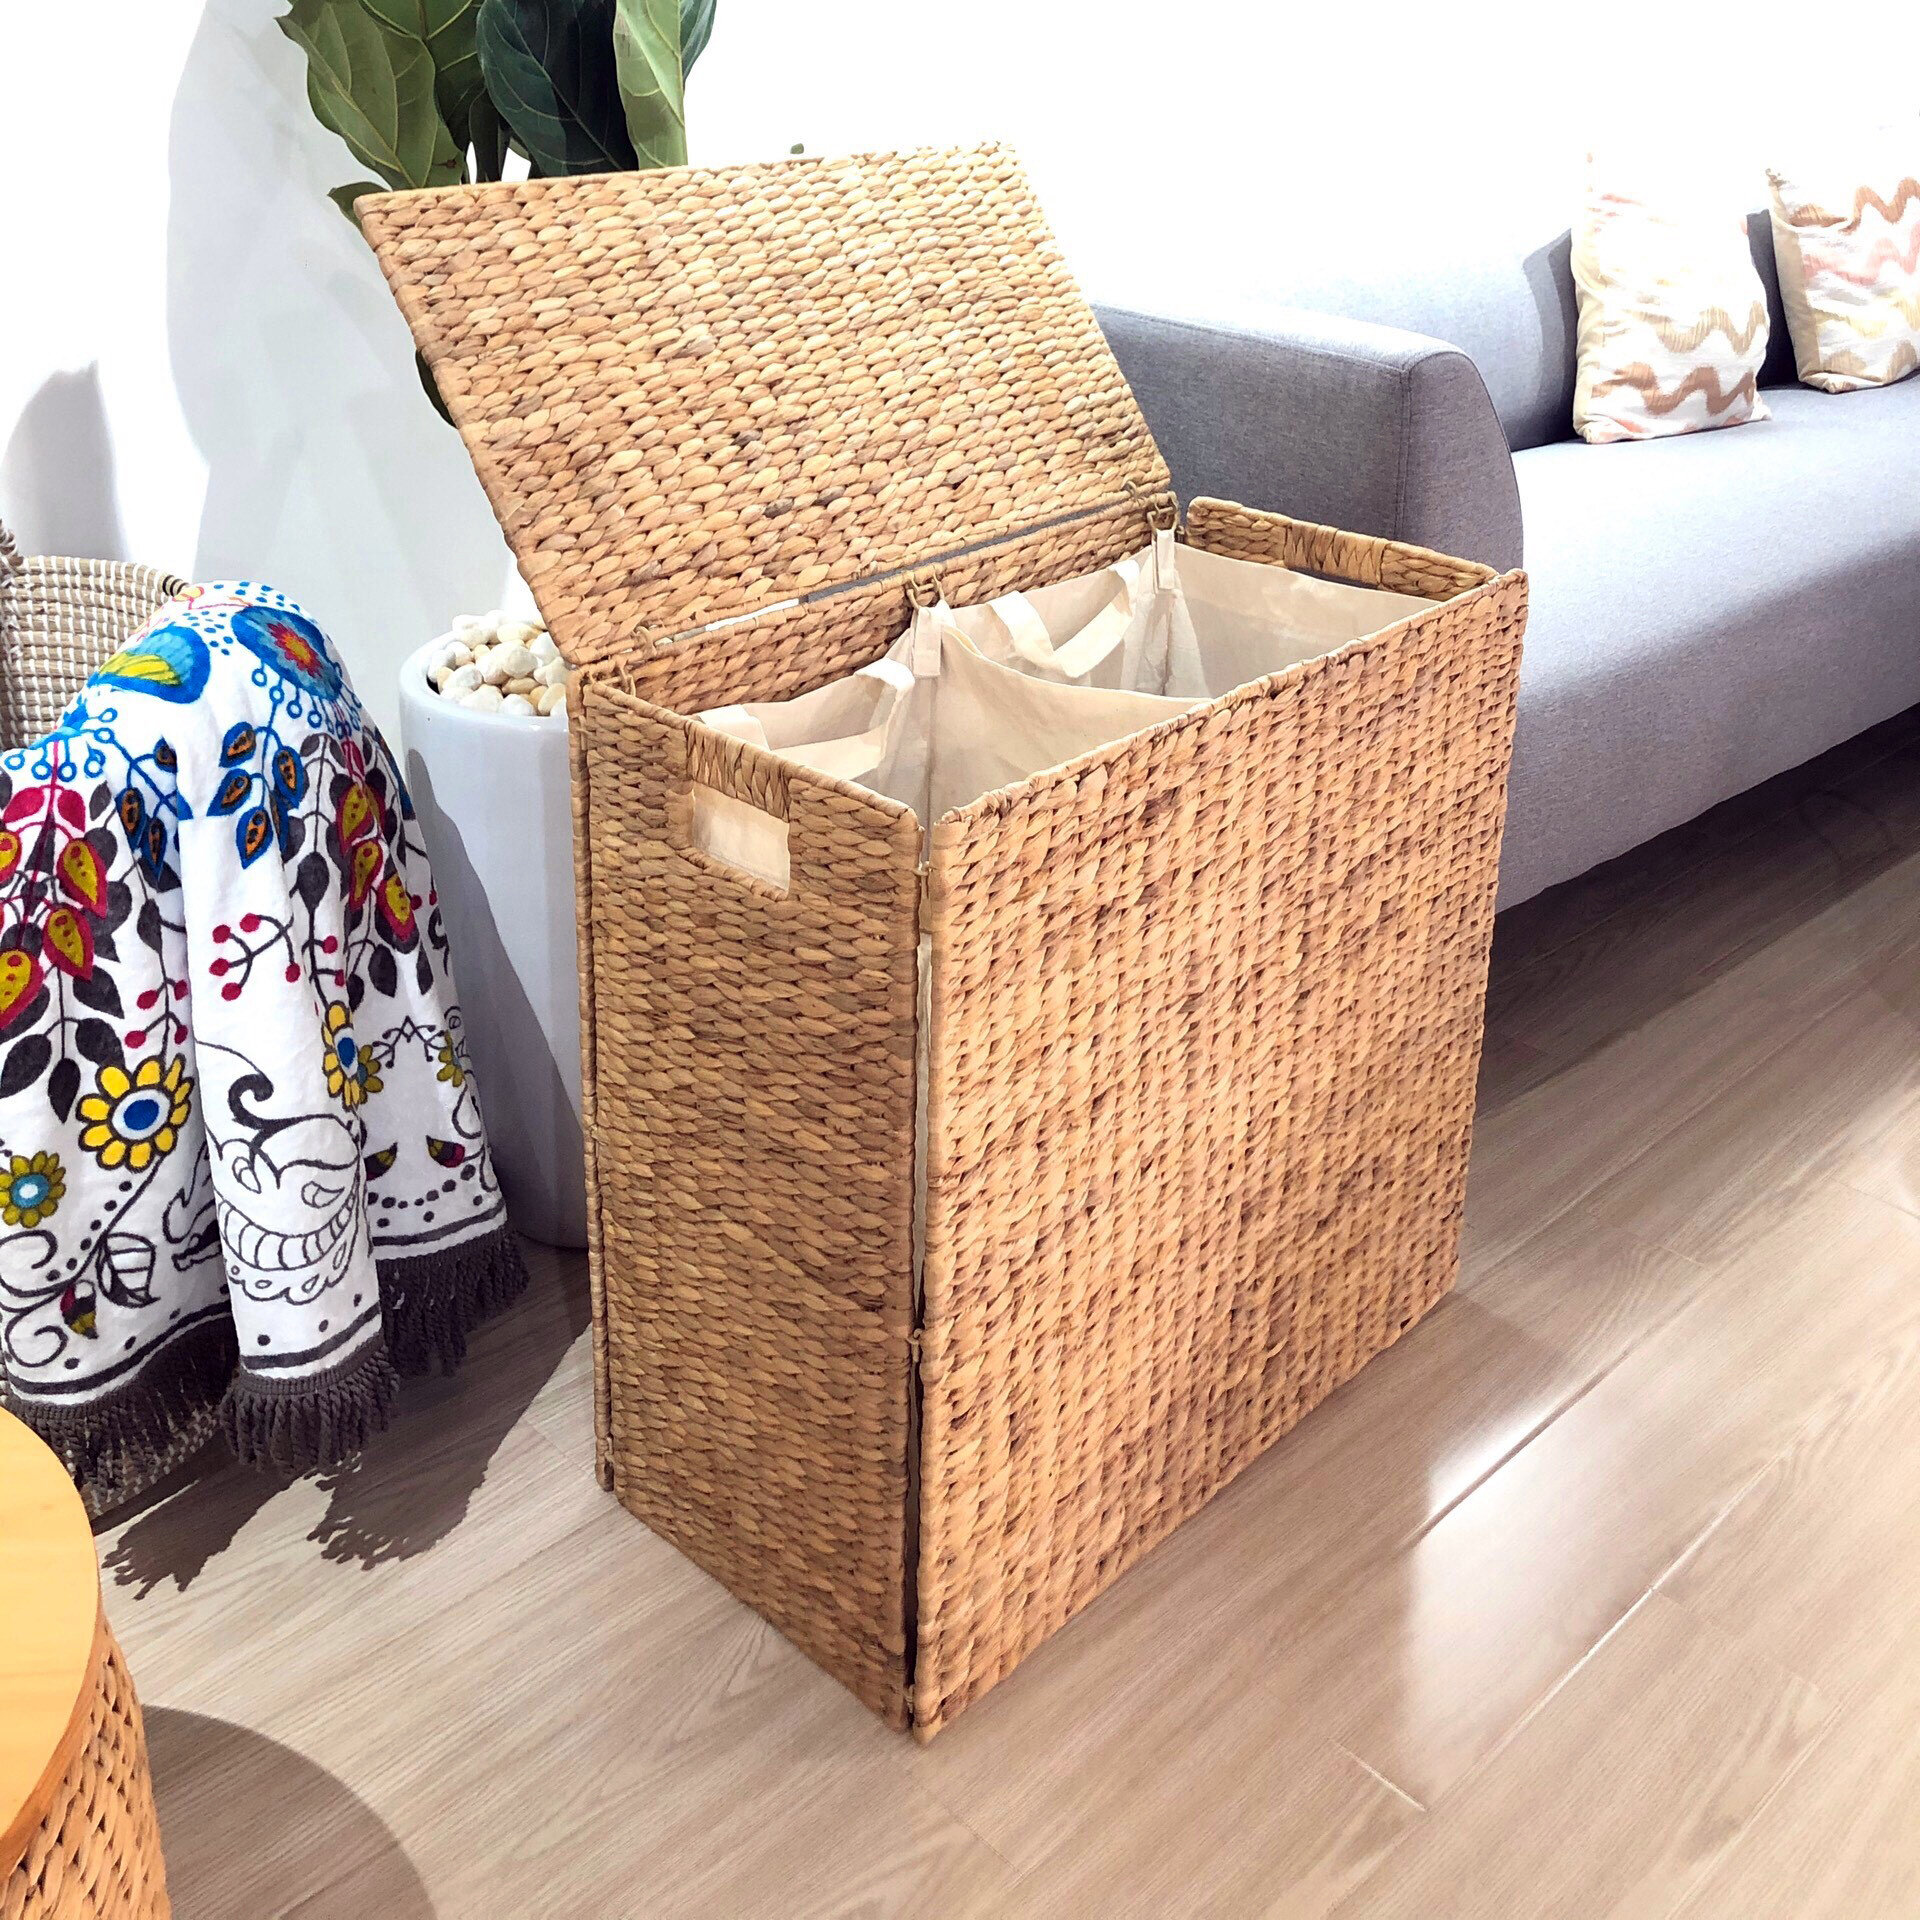 Bayou Breeze Wicker Double Sided Laundry Clothes Hamper Basket Seagrass With Lid Wayfair